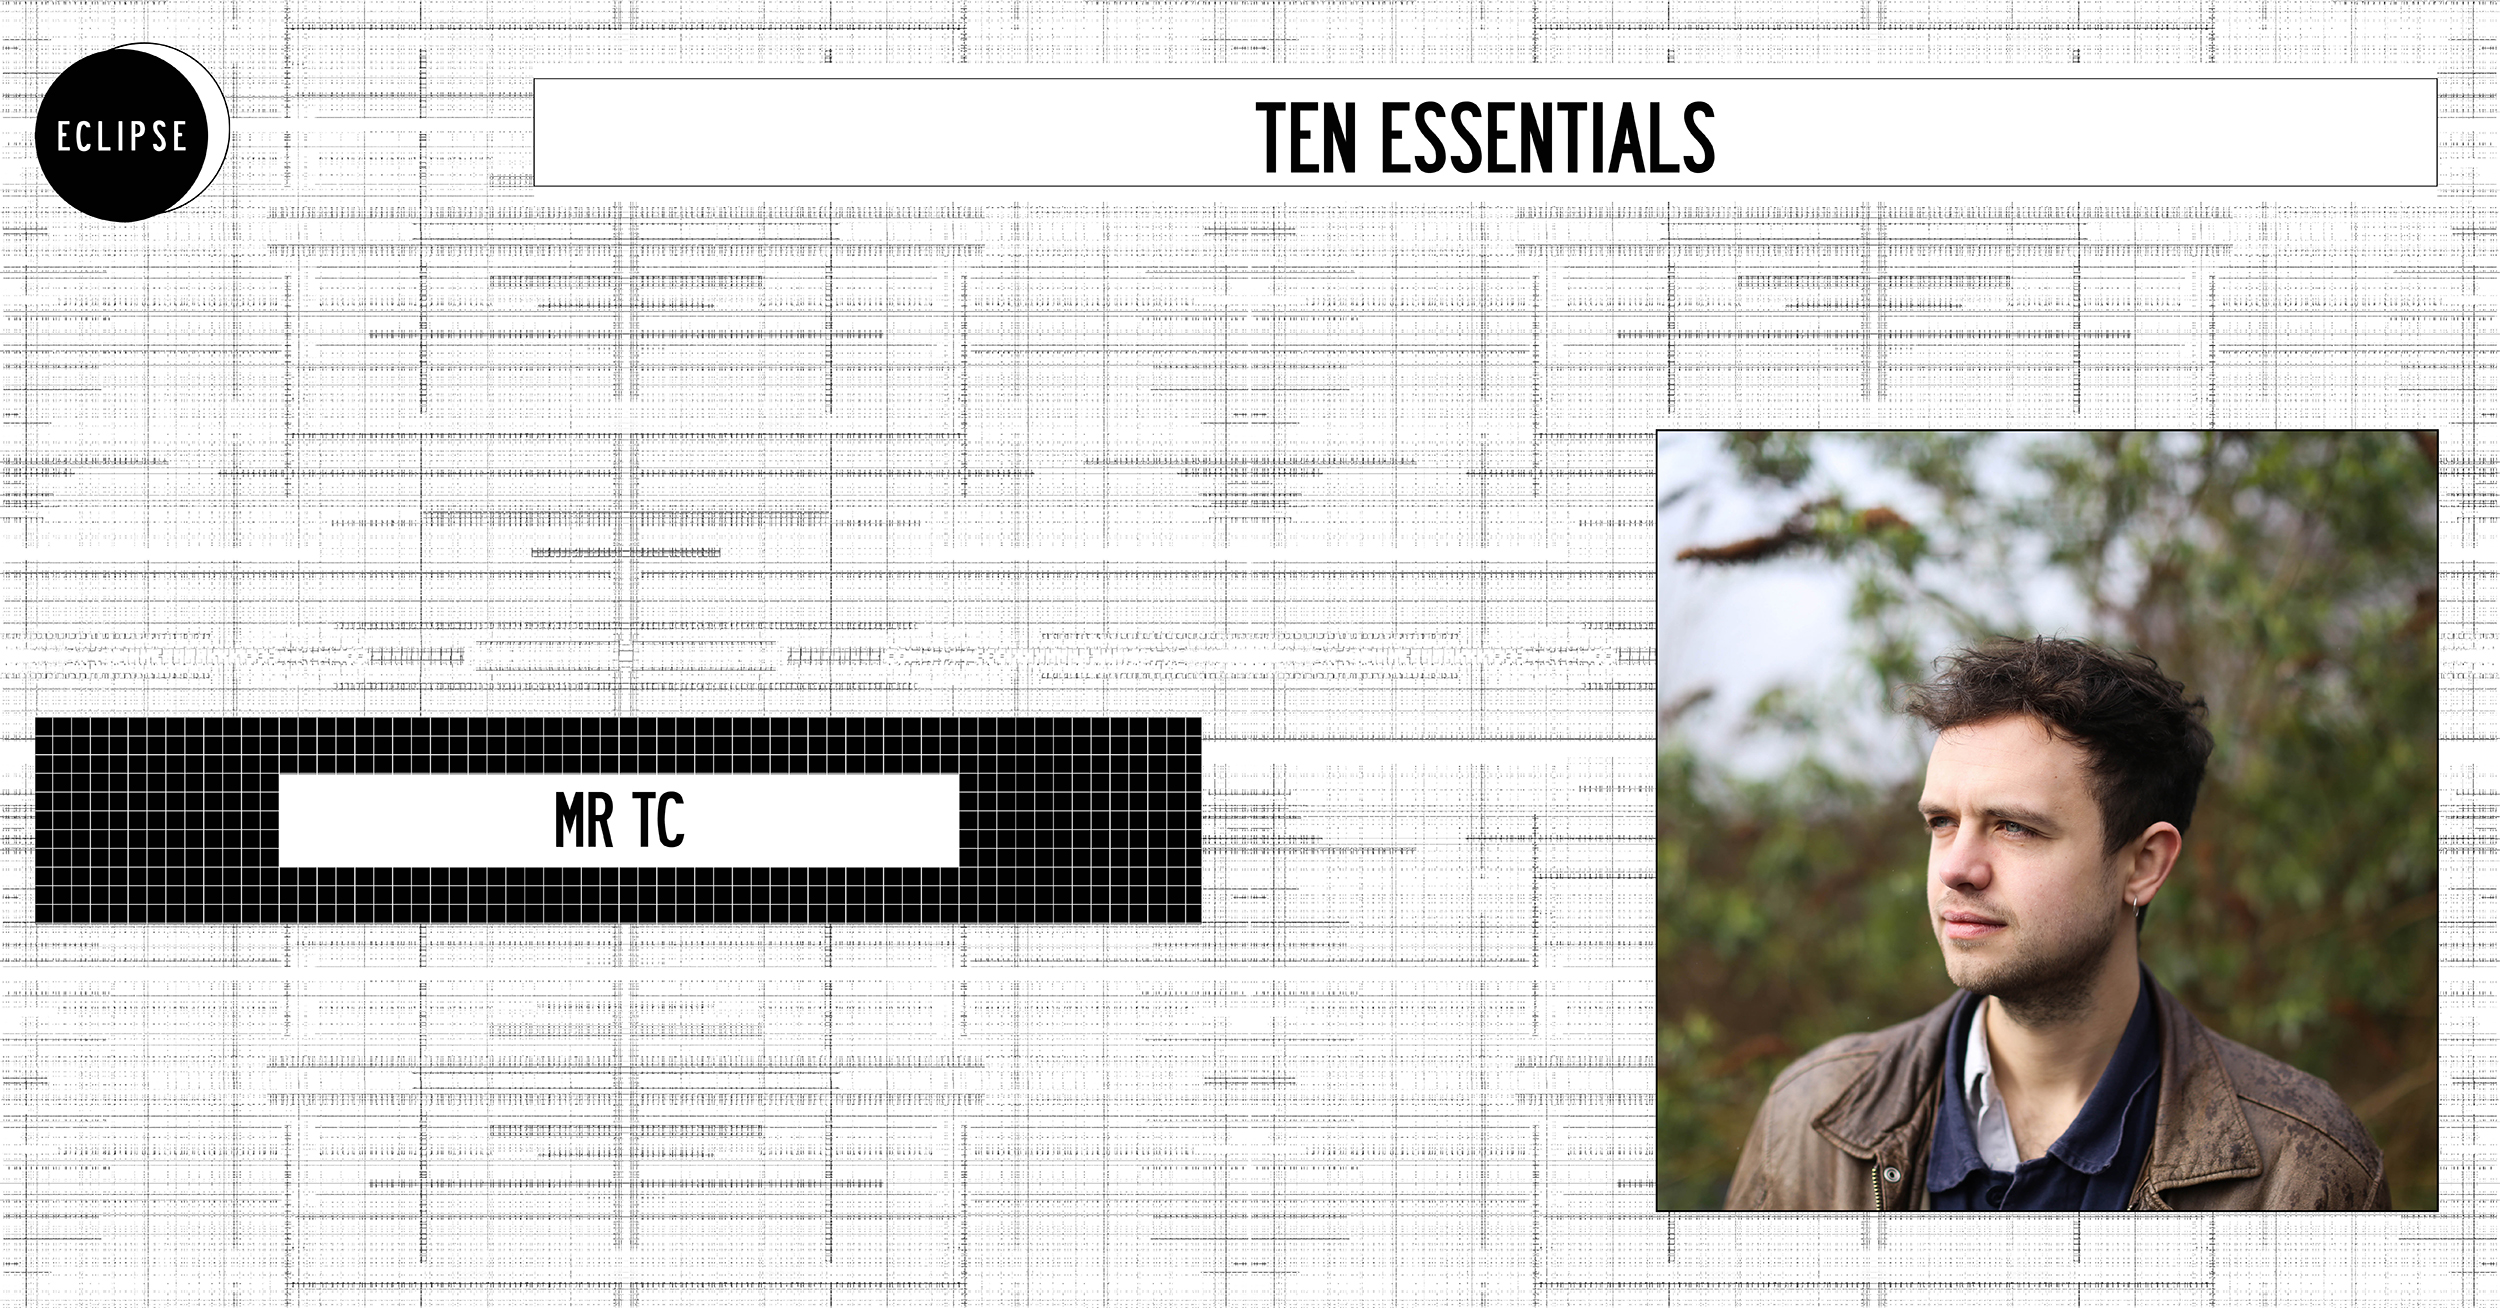 TEN ESSENTIALS DE MR TC